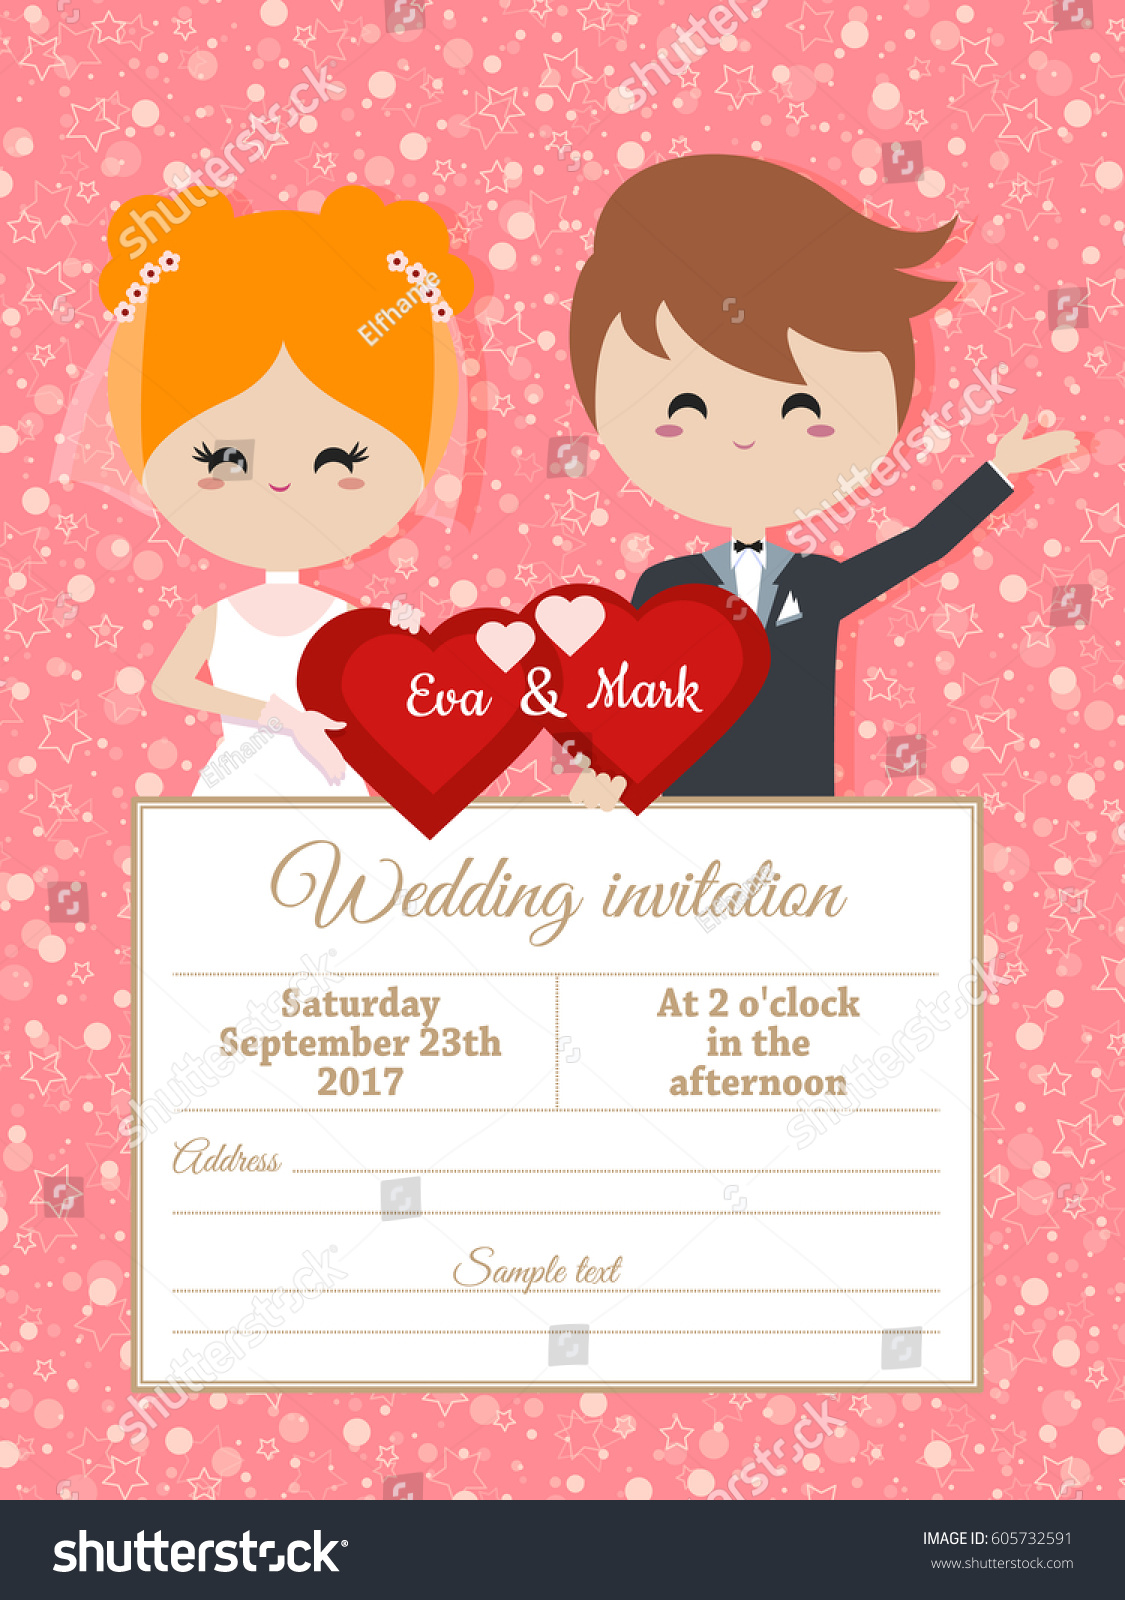 Wedding Invitation Groom Bride Holding Heart Stock Vector 605732591 ...